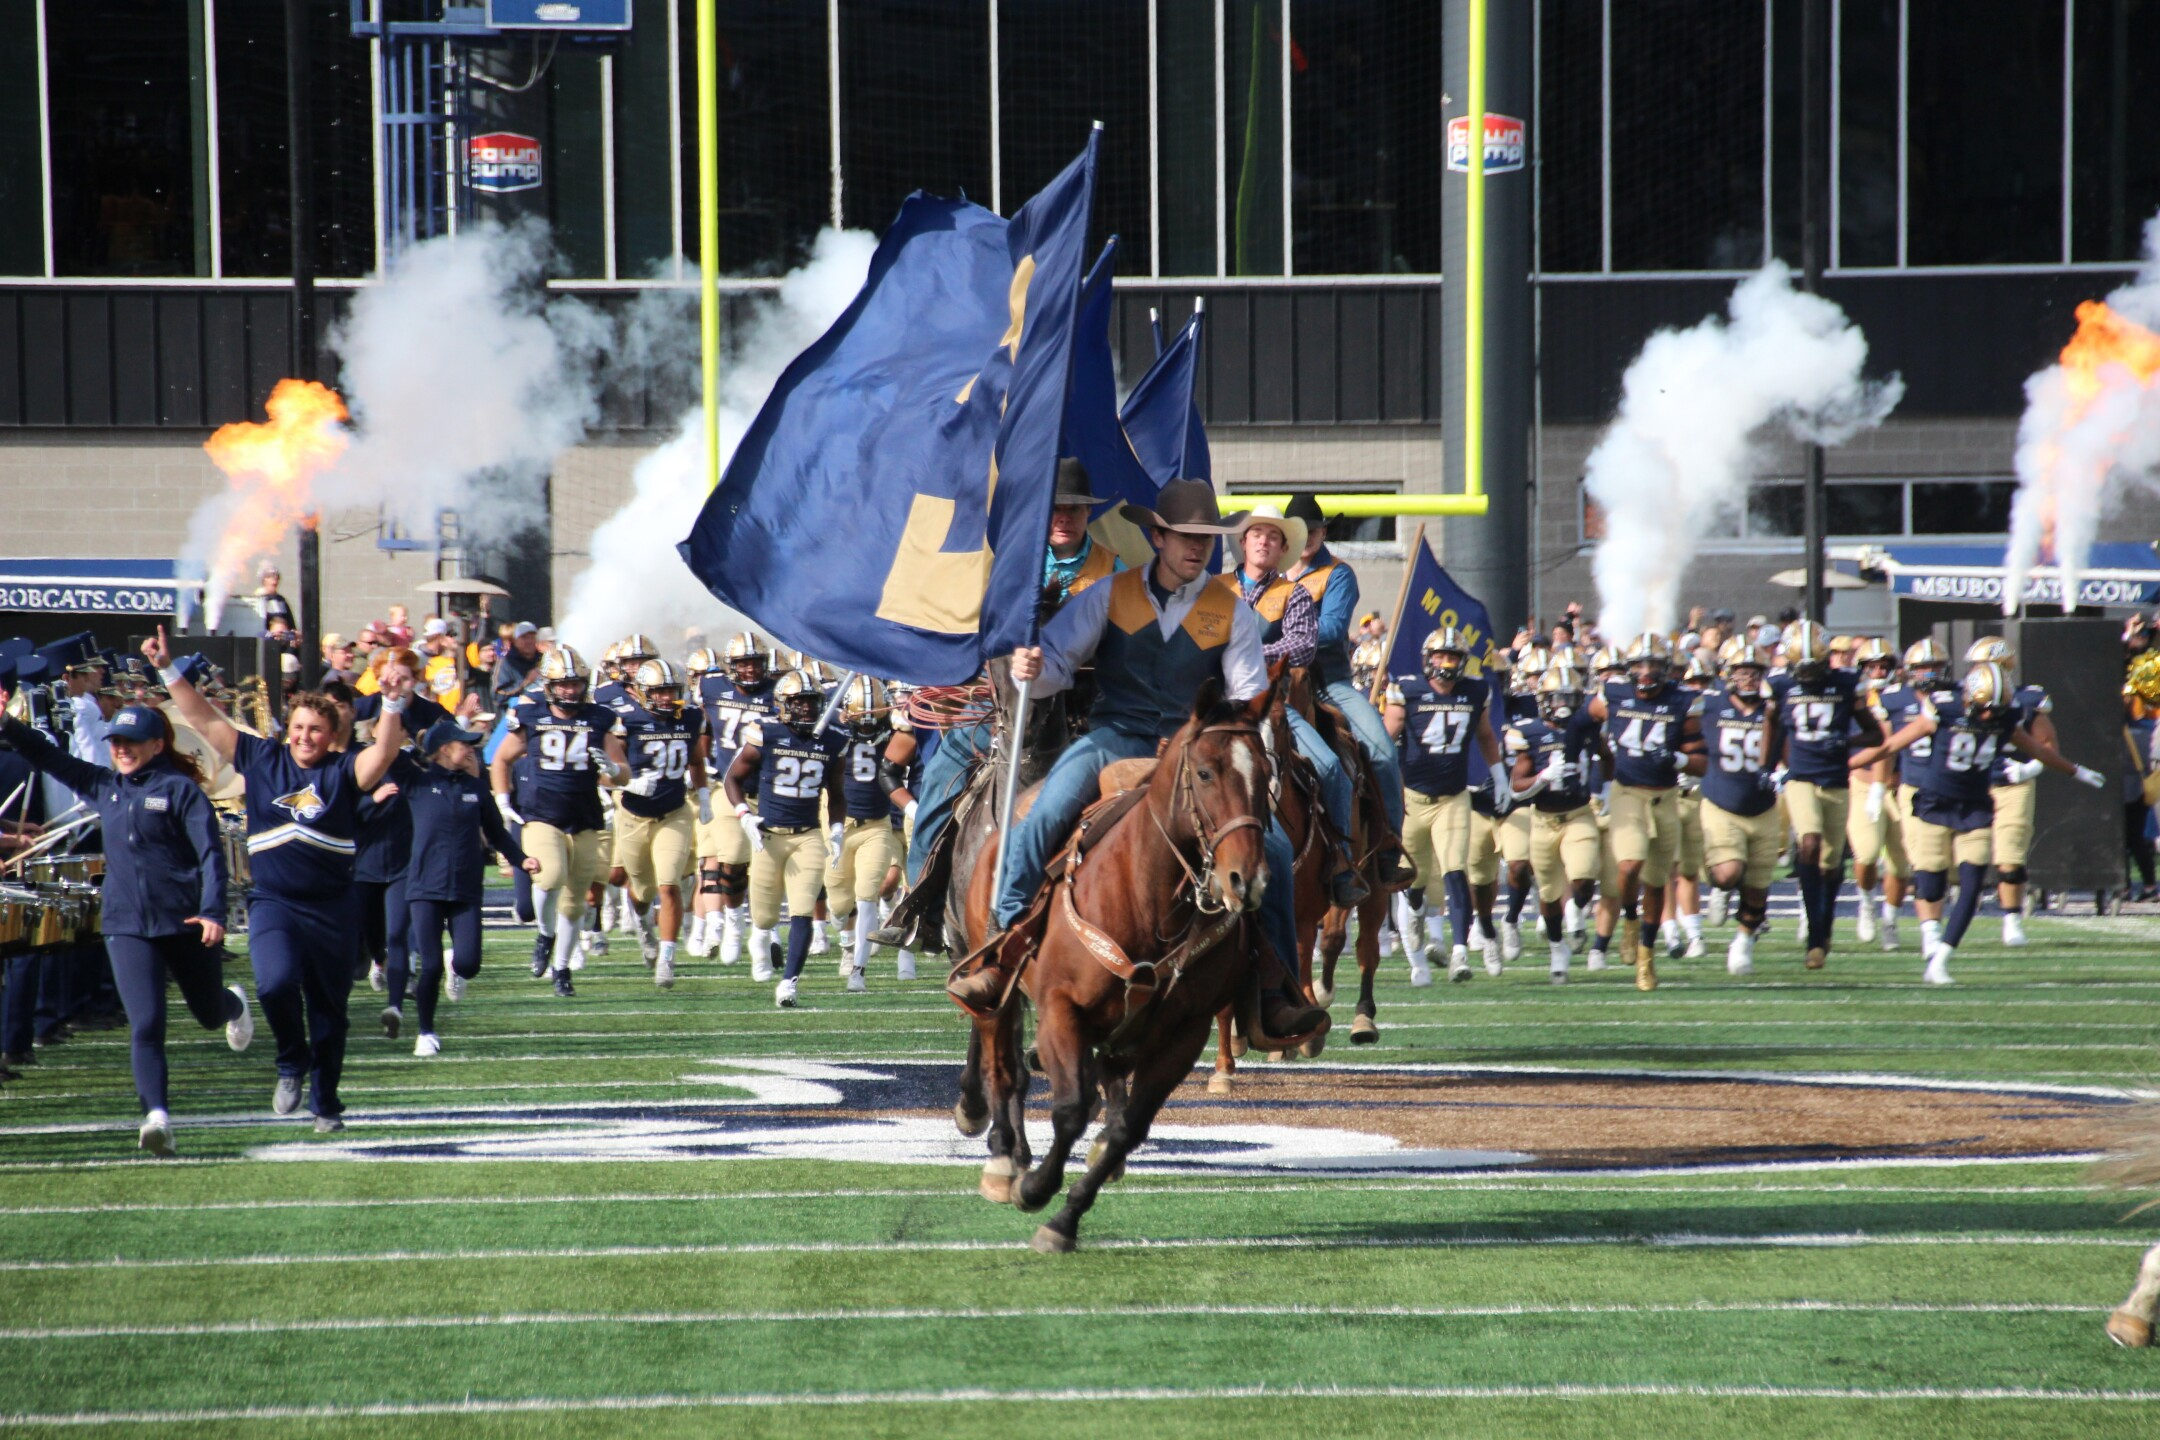 Montana State rodeo team rides in before the game